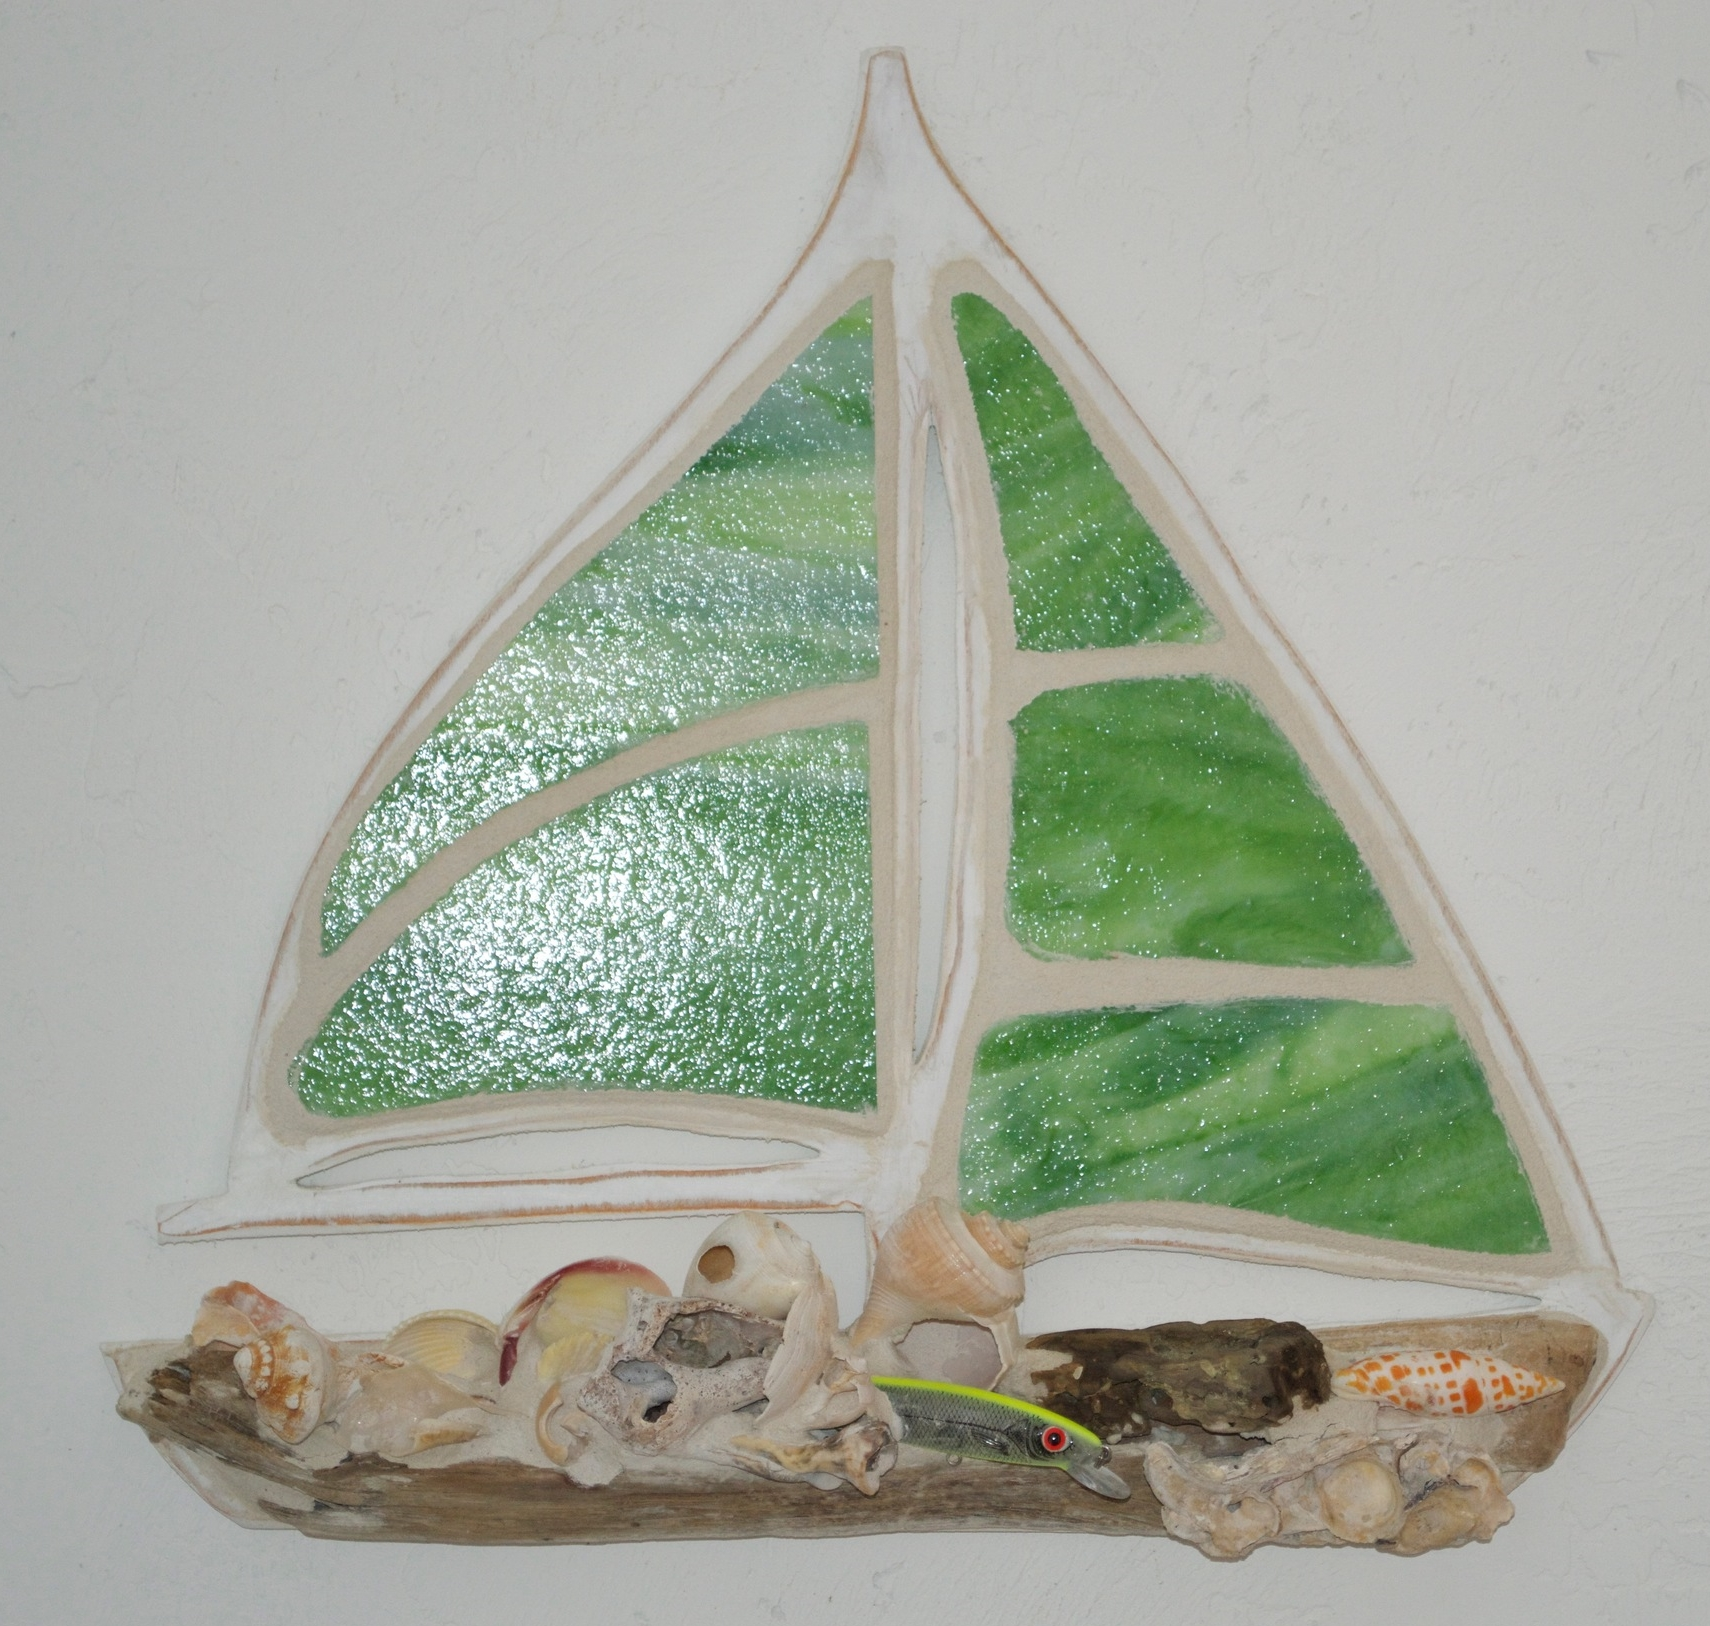 """Beach Art - Sailboat - wood, stained glass, beach objects - small 11"""" x 12"""", large 21"""" x 19"""" $149"""